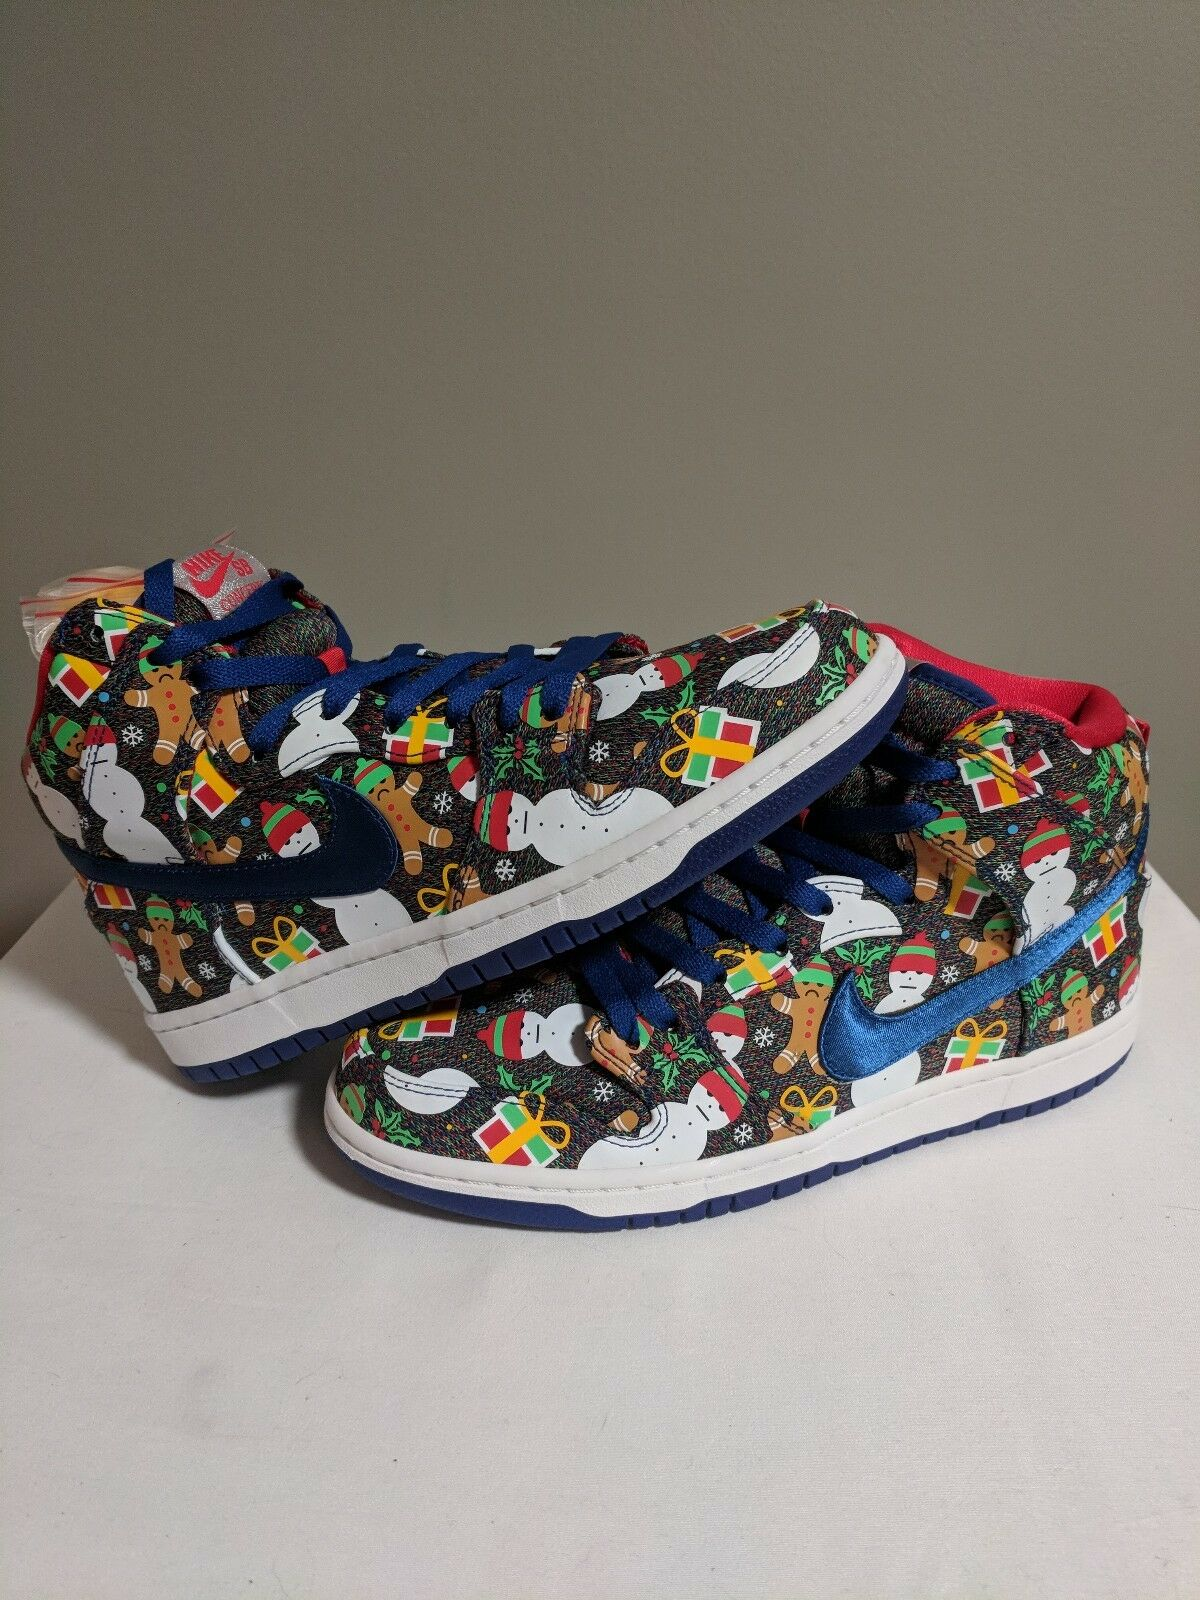 Nike SB Dunk High TRD QS Ugly Christmas Sweater concepts lobster bluee Size 8.5